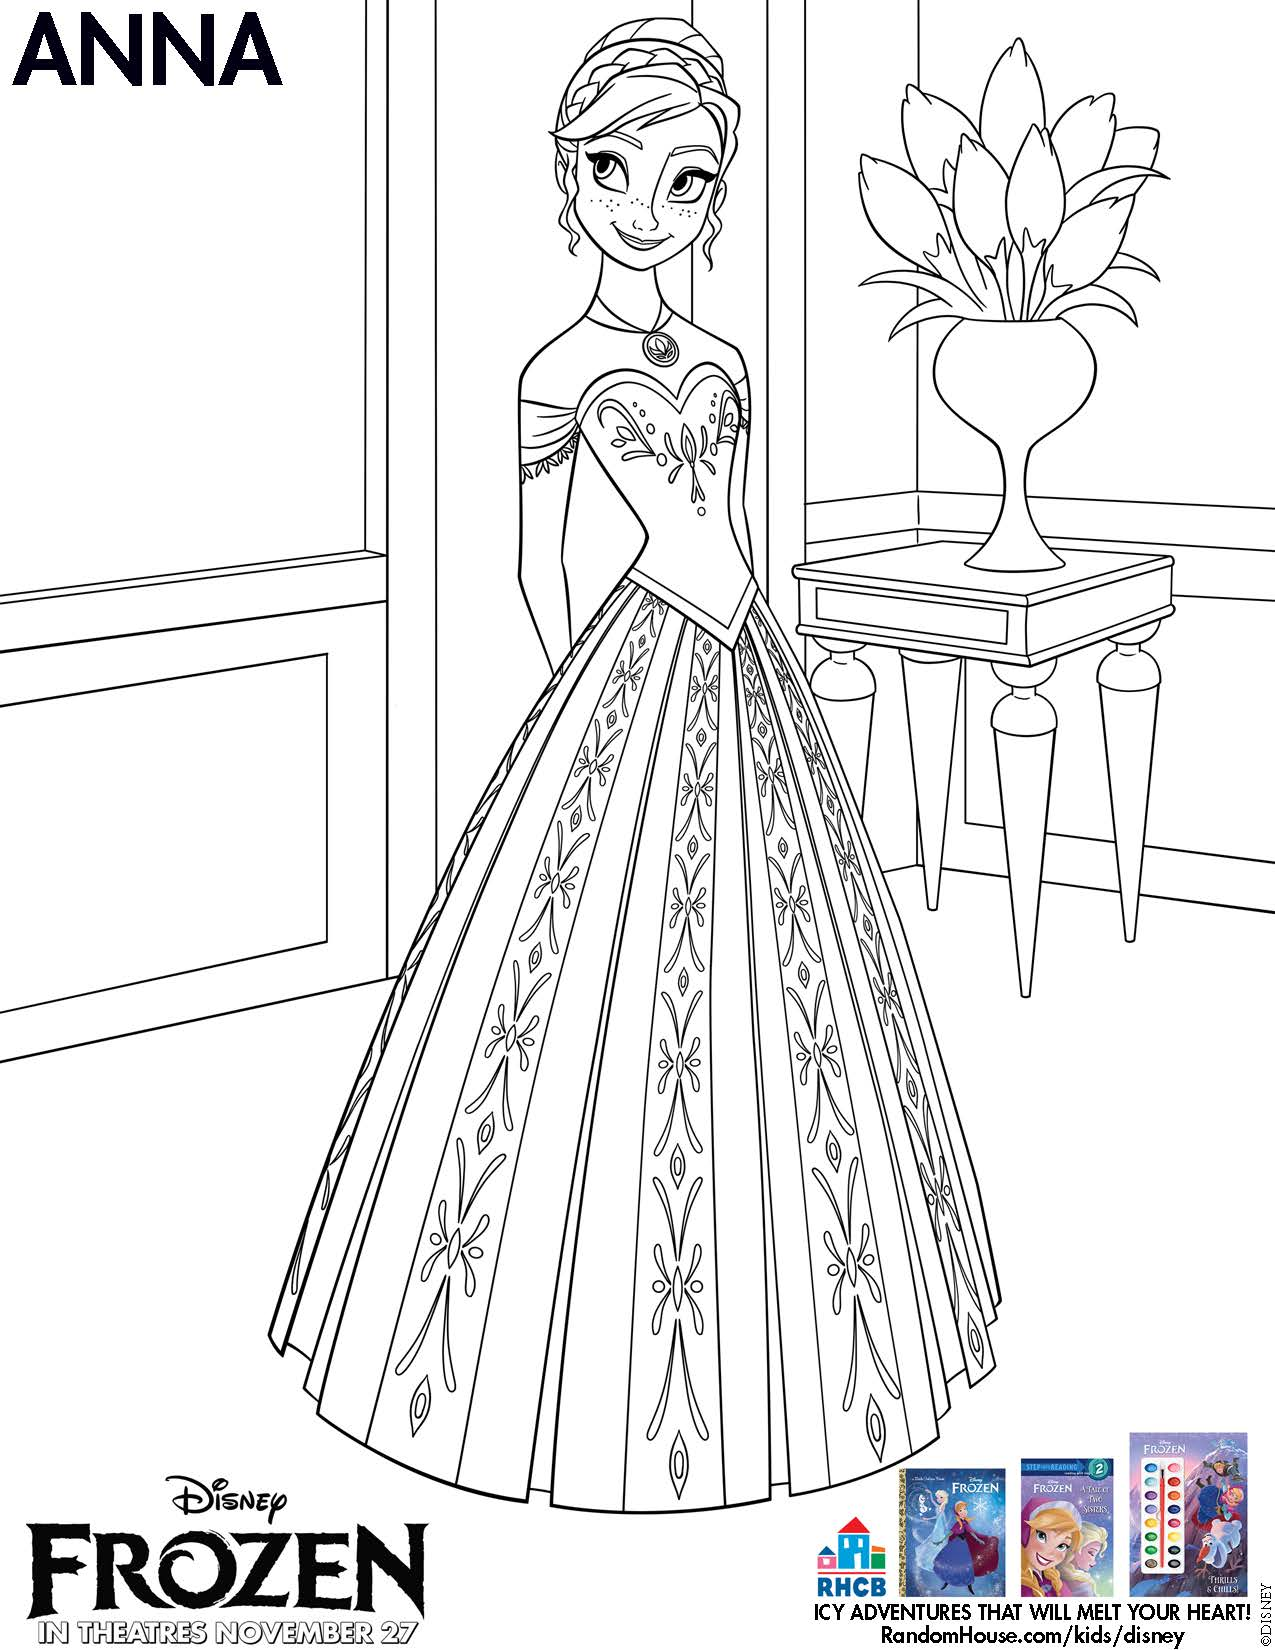 Disney Frozen Anna Coloring Sheet Printable